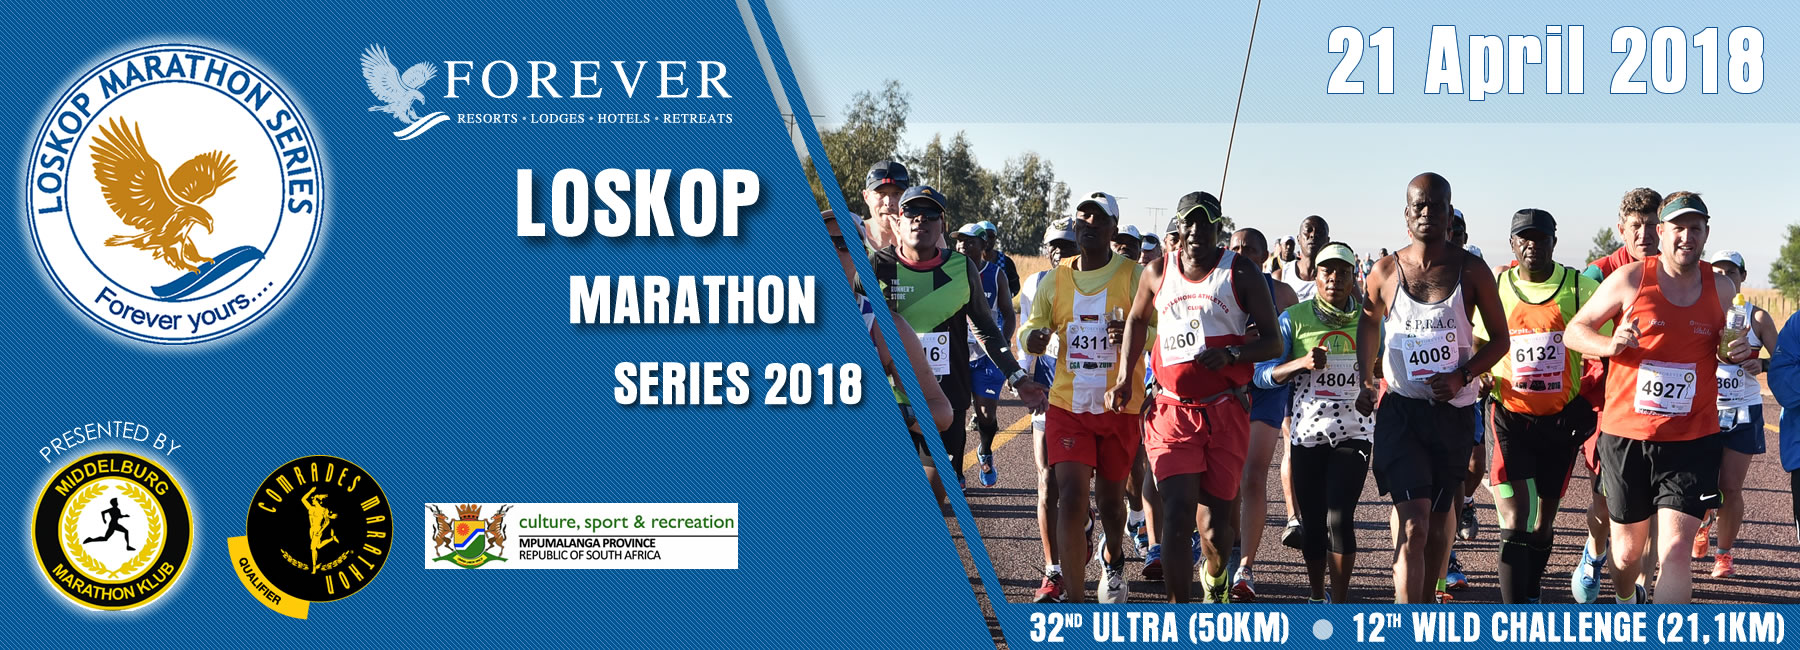 Forever Resorts Loskop Marathon Series 2018